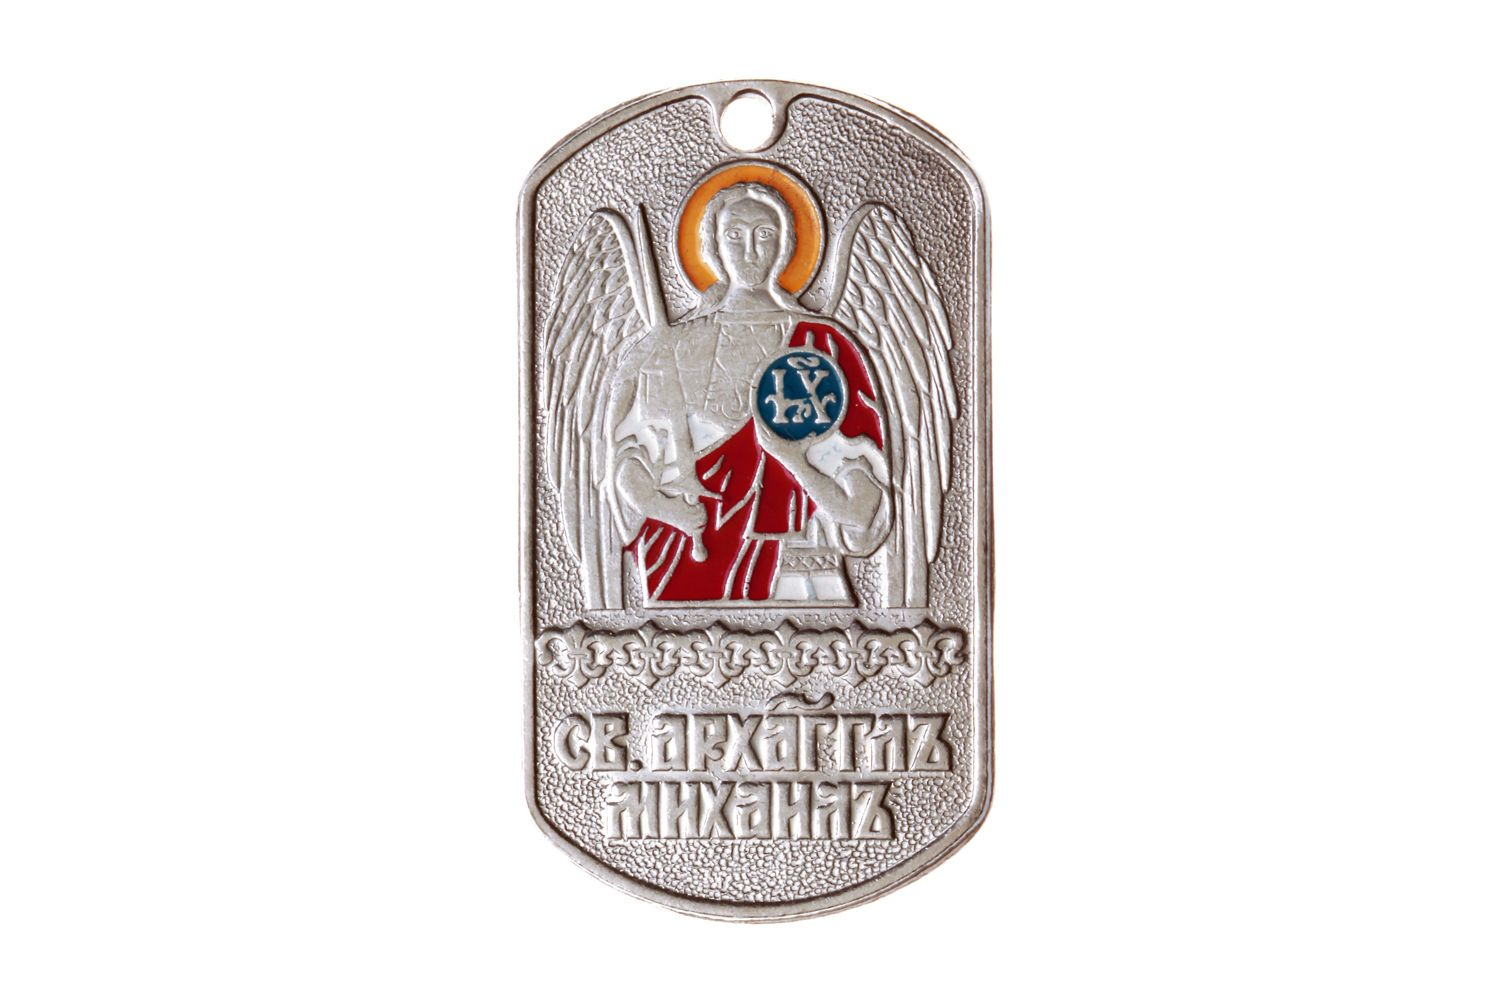 Dog tag saint archangel michael archangel michael is the heavenly dog tag saint archangel michael archangel michael is the heavenly protector of the paratroopers and parachuters the naked sword is a symbol of not only biocorpaavc Images